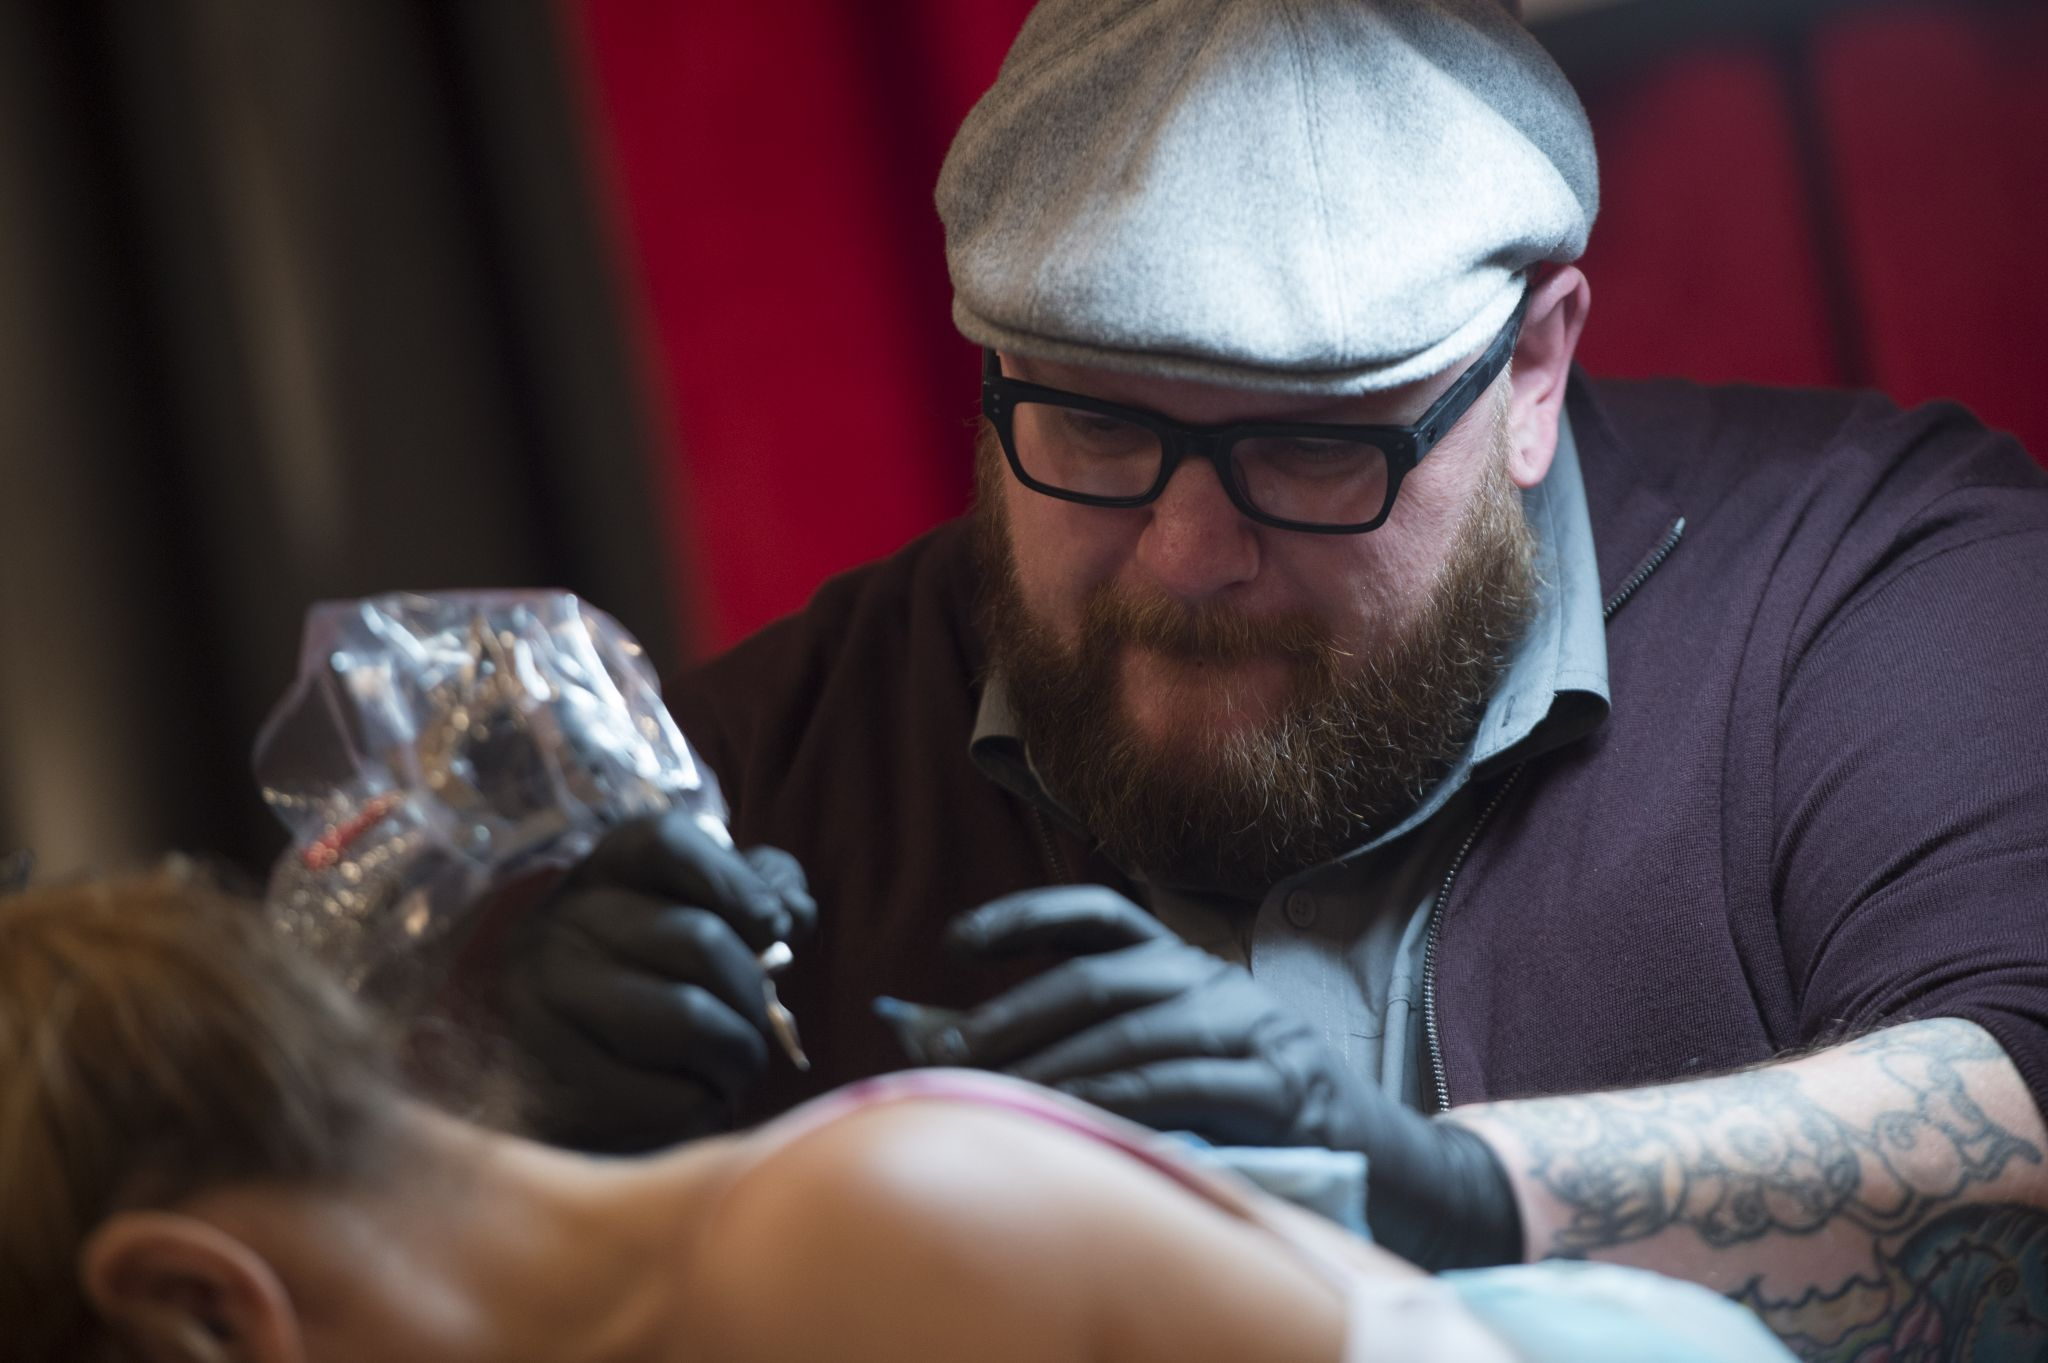 Houston tattoo artist makes his reality show debut this month ...